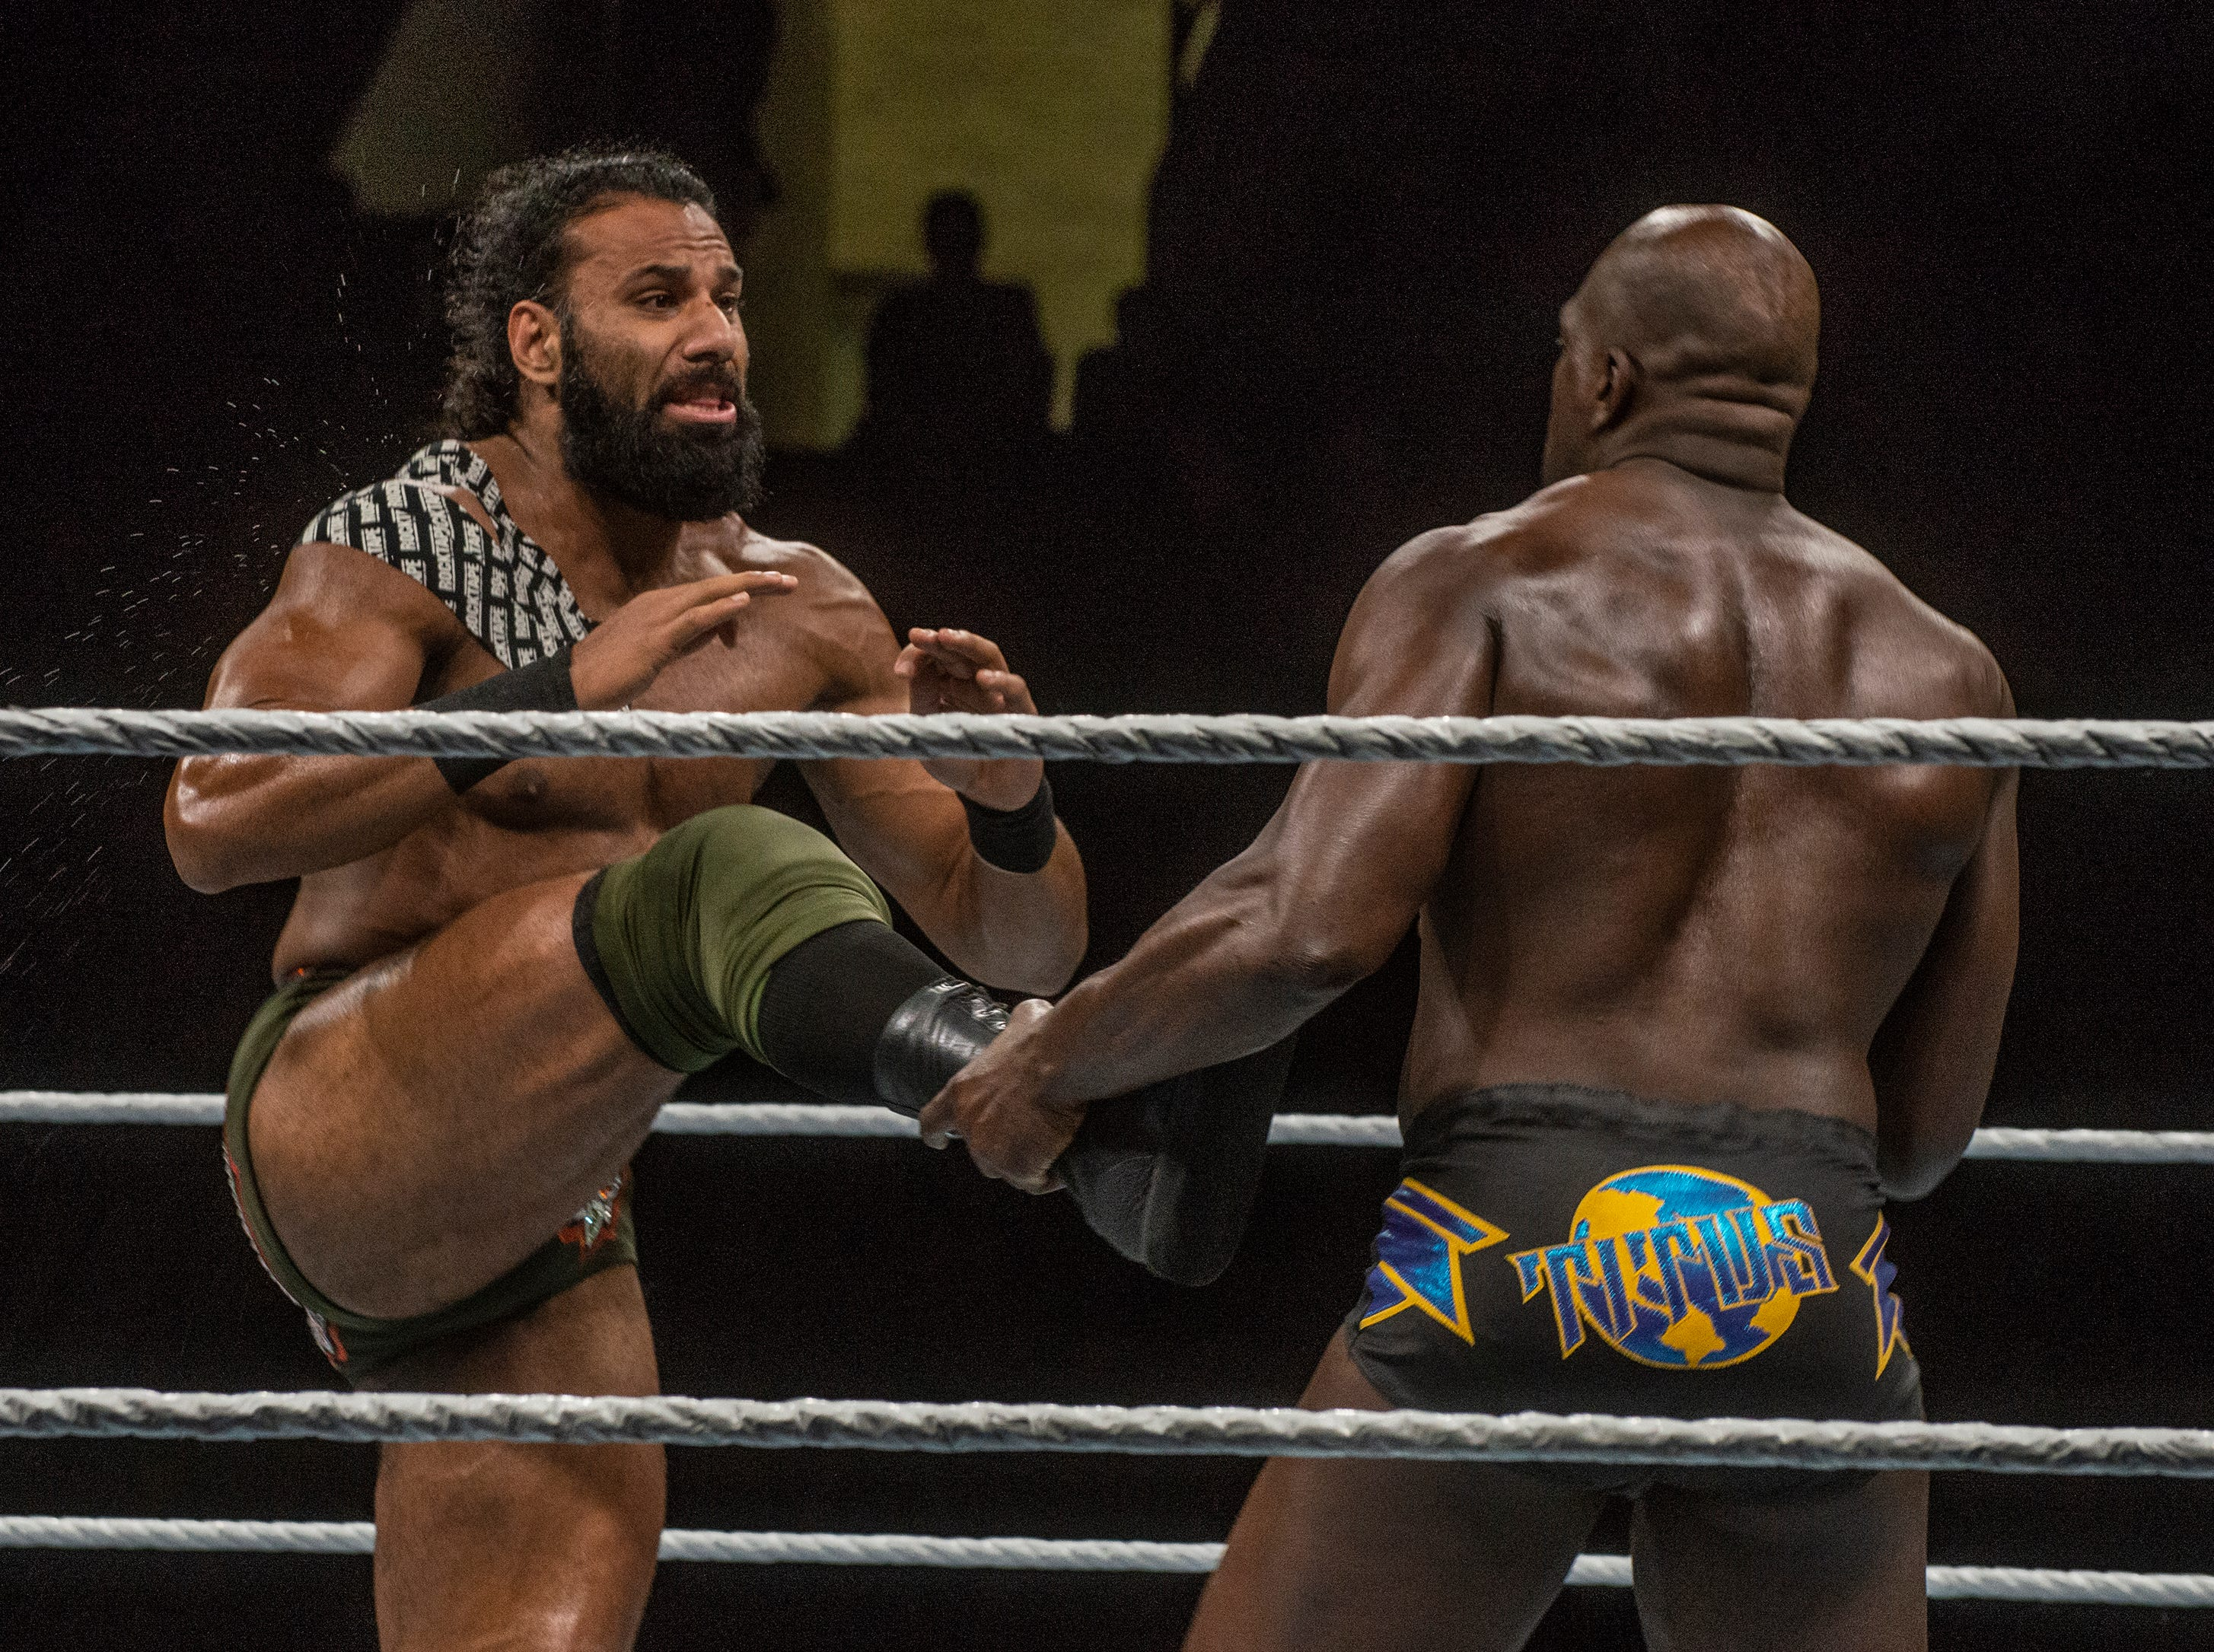 Jinder Mahal's leg gets caught by Titus OÕNeil. WWE Live Road to Wrestlemania came to Garrett Coliseum in Montgomery on Sunday, Feb. 24, 2019.